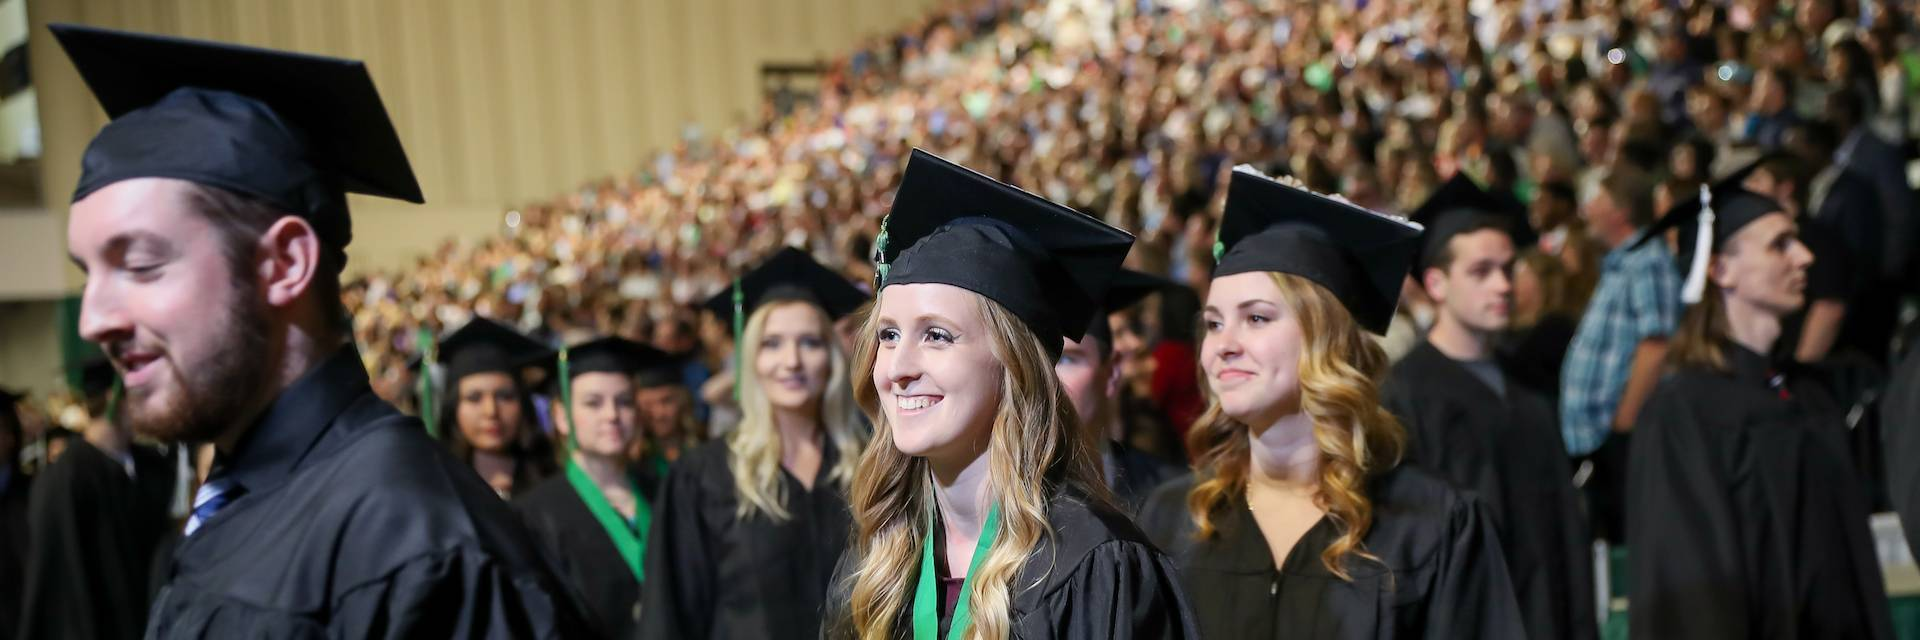 UND Arts & Sciences Students at Graduation